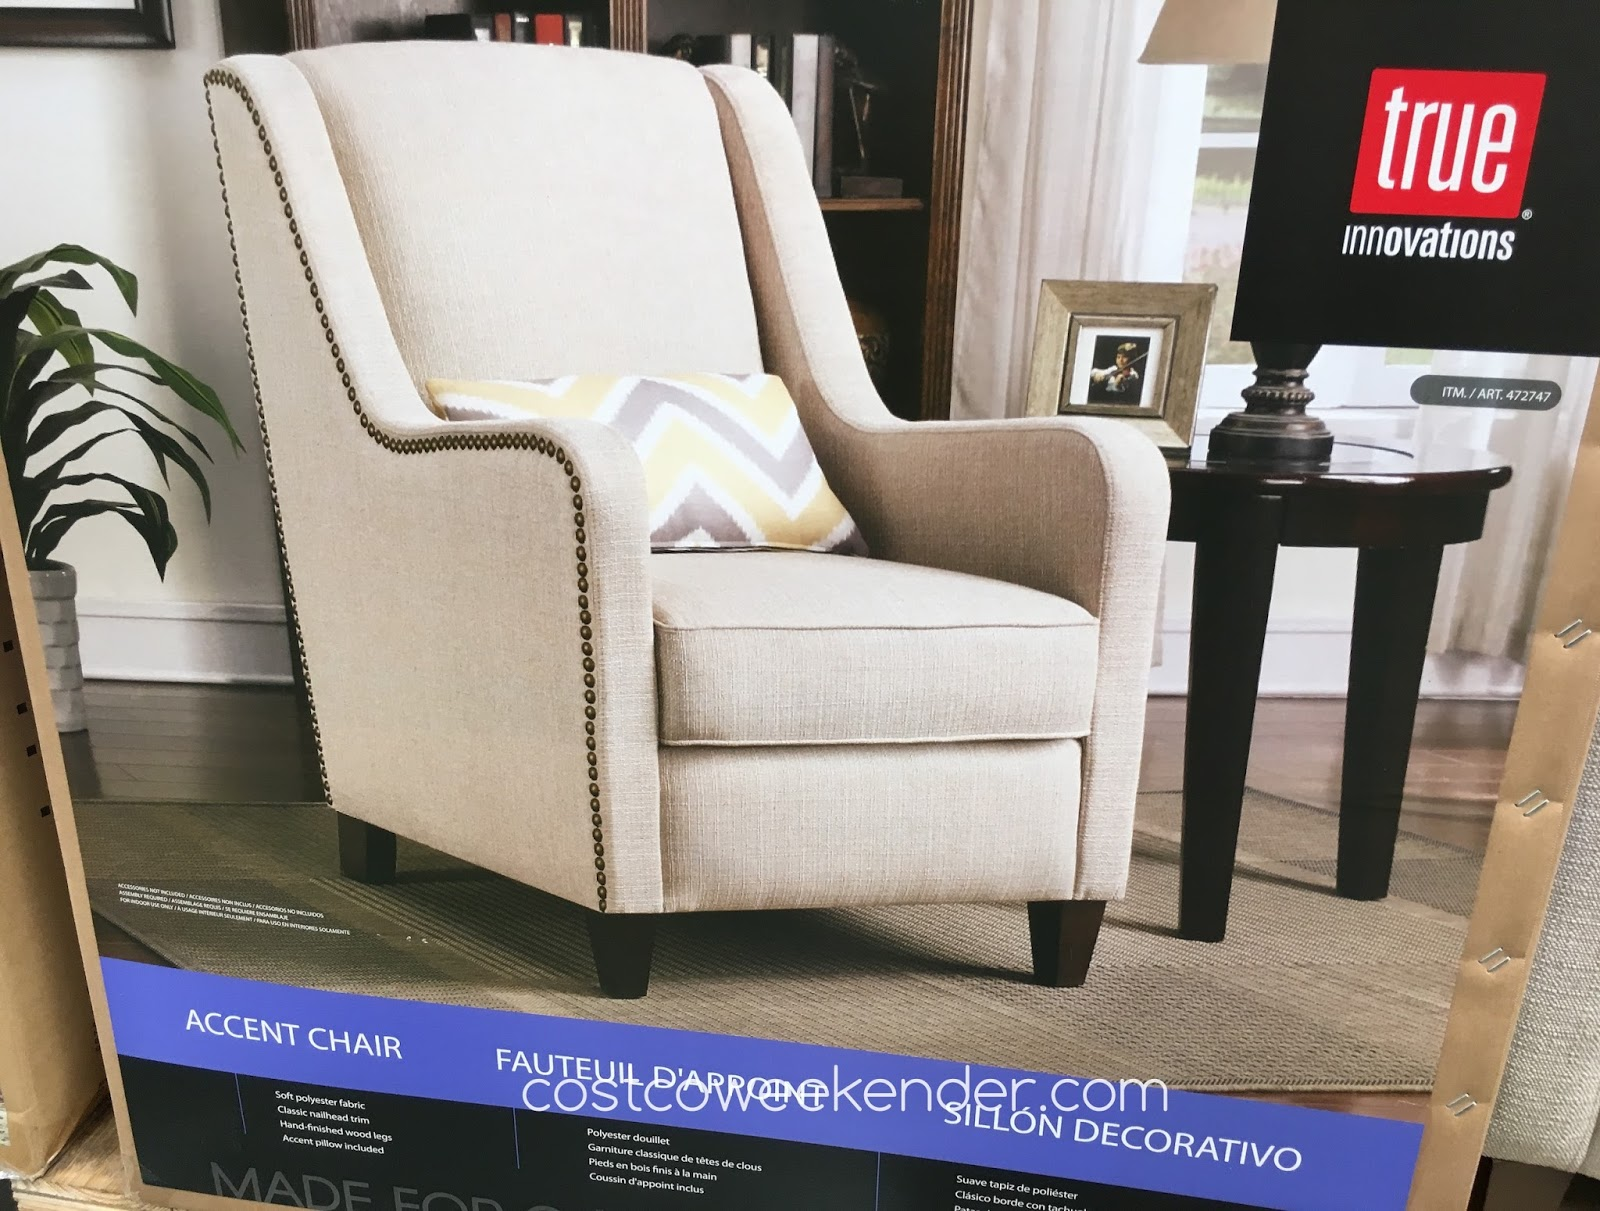 True Innovations Chair Costco Fabric Recliner And Footstool July 2016 Weekender